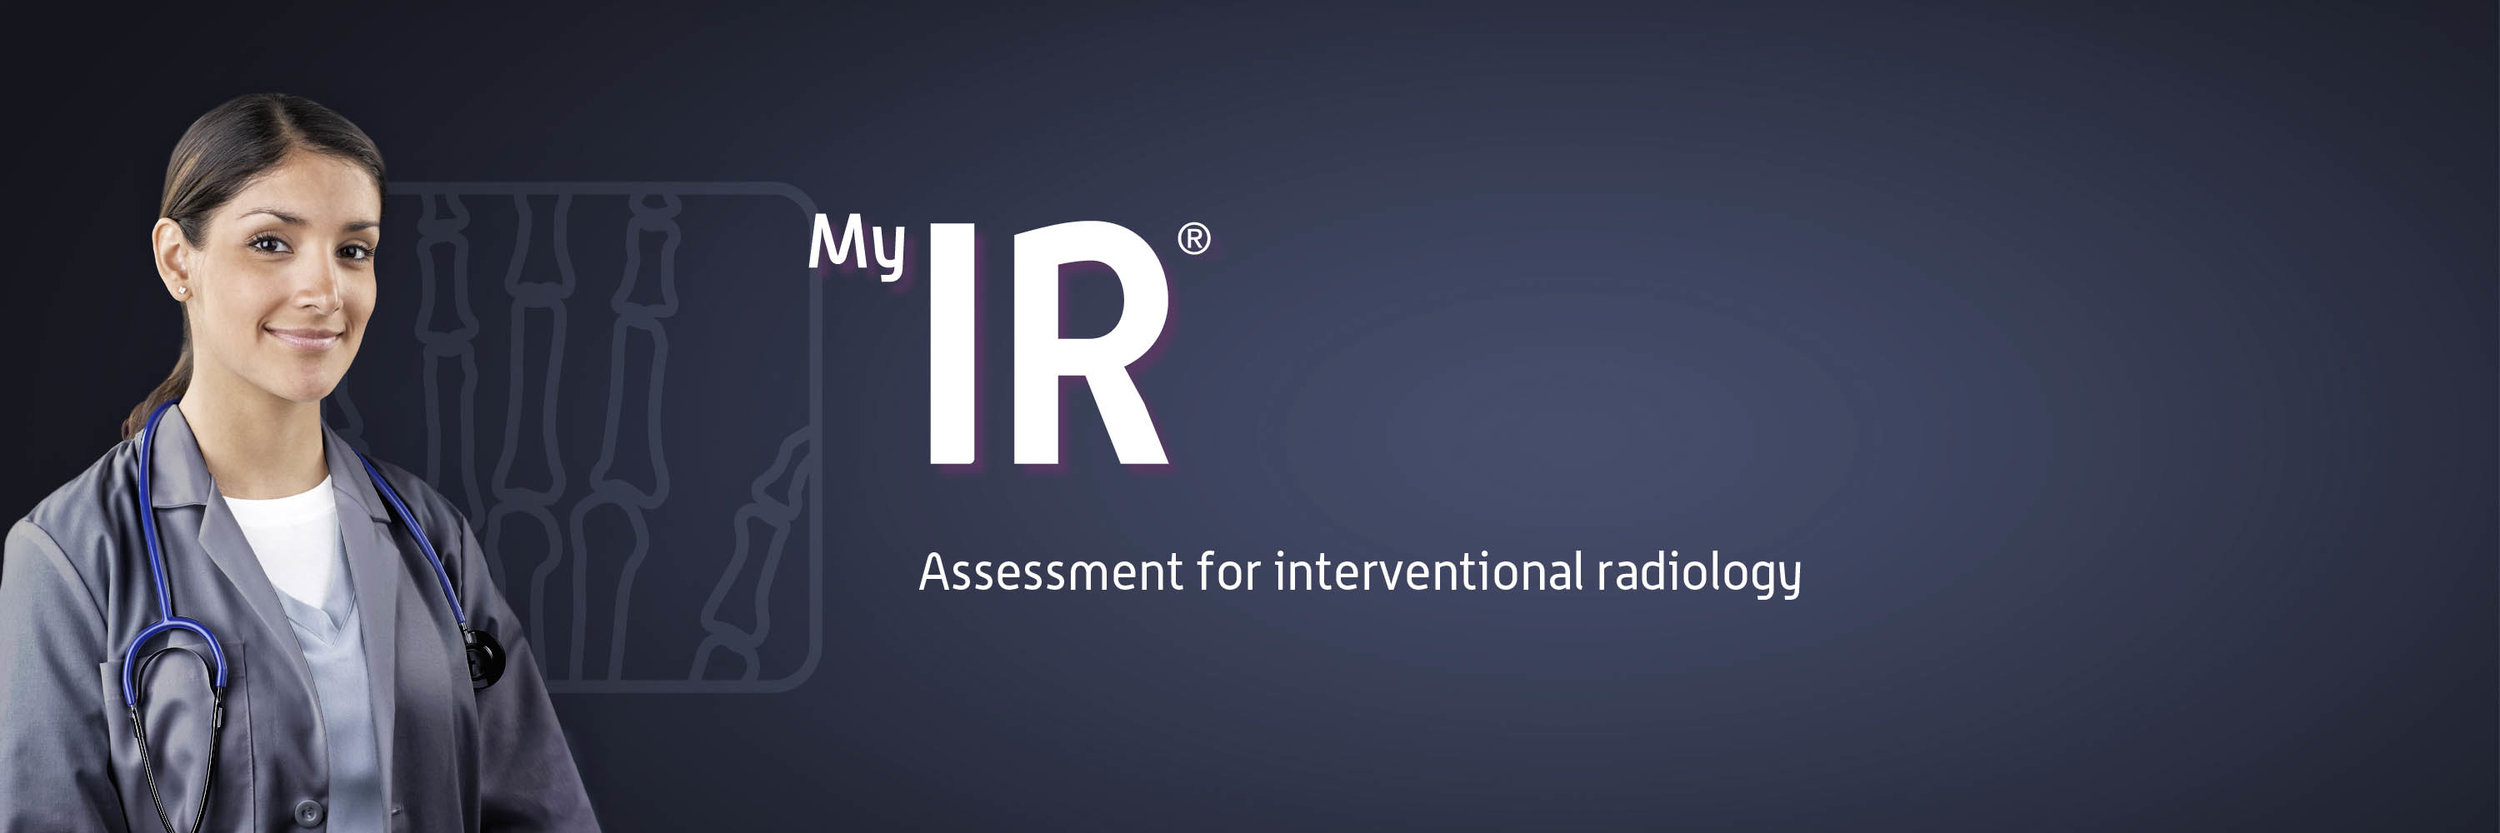 MyIR banner featuring radiologist.  Assessment for interventional radiology procedures